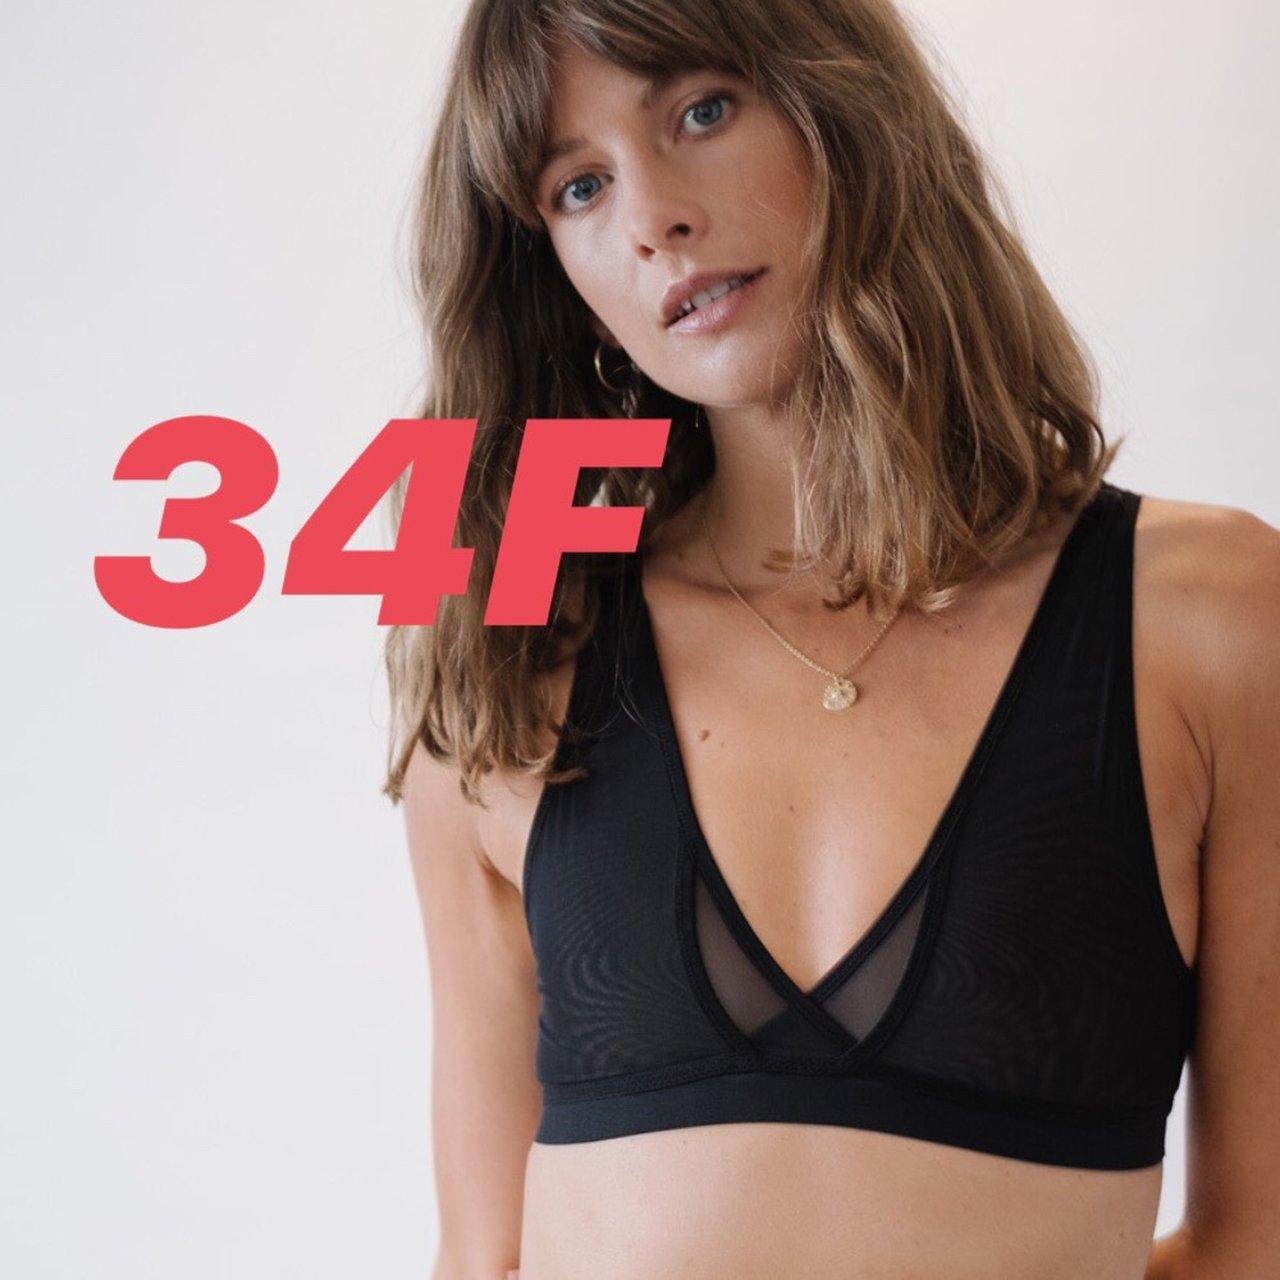 a8a856bd22 WREN BRA - BLACK - 34F This wireless mesh bra is made from - Depop